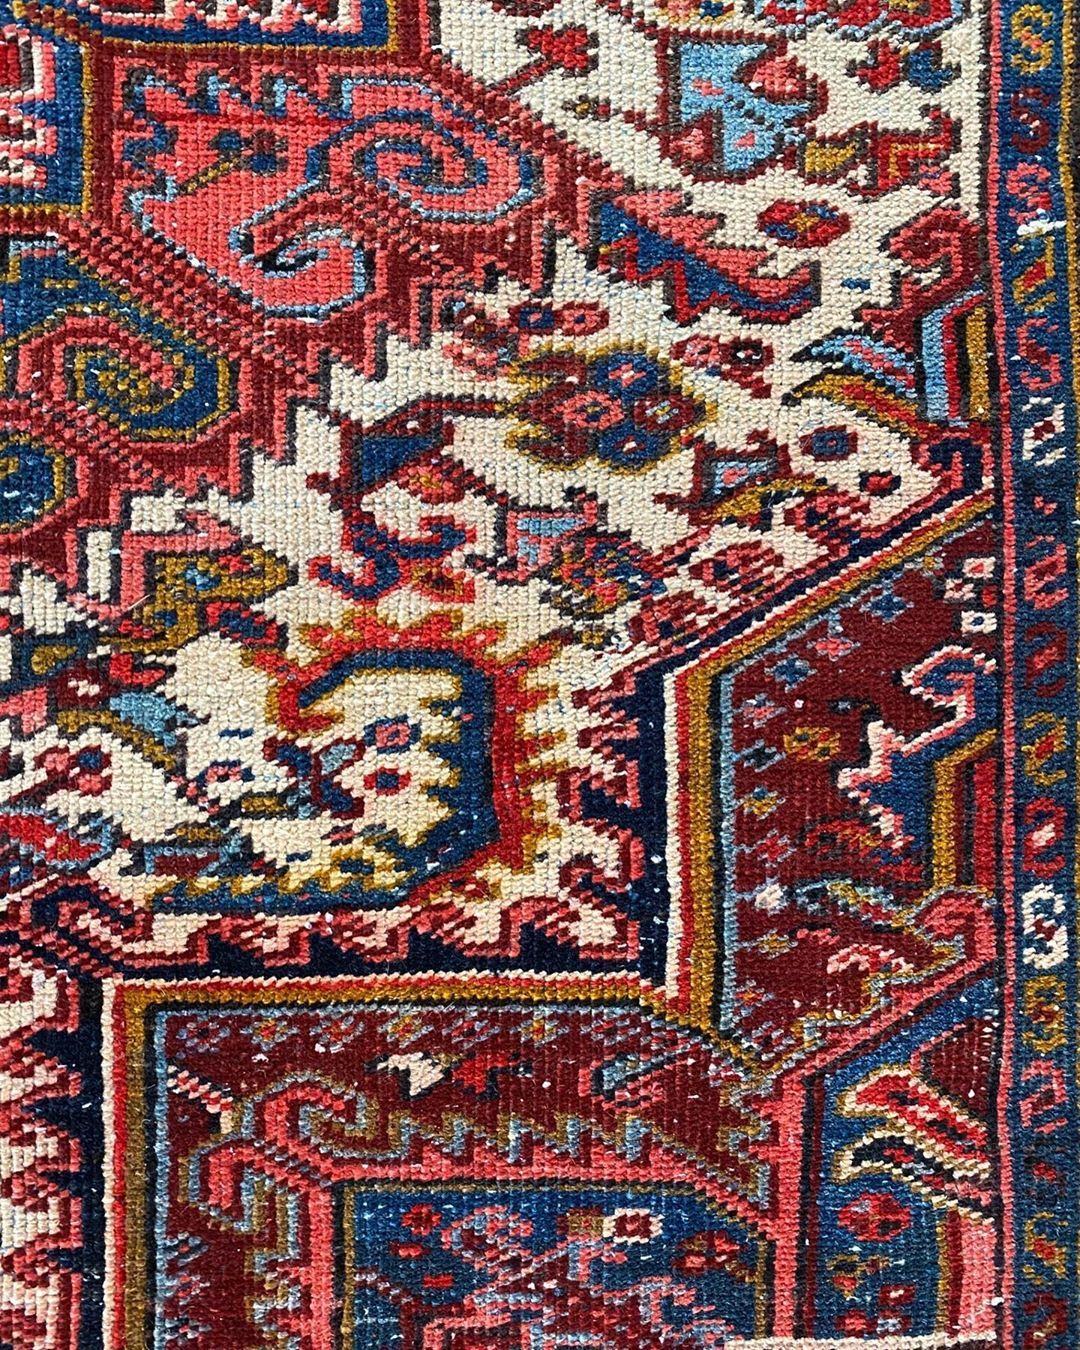 Nomads Loom Texas Store Rug How Advisor In 2020 Rugs Rug Store Quality Rugs